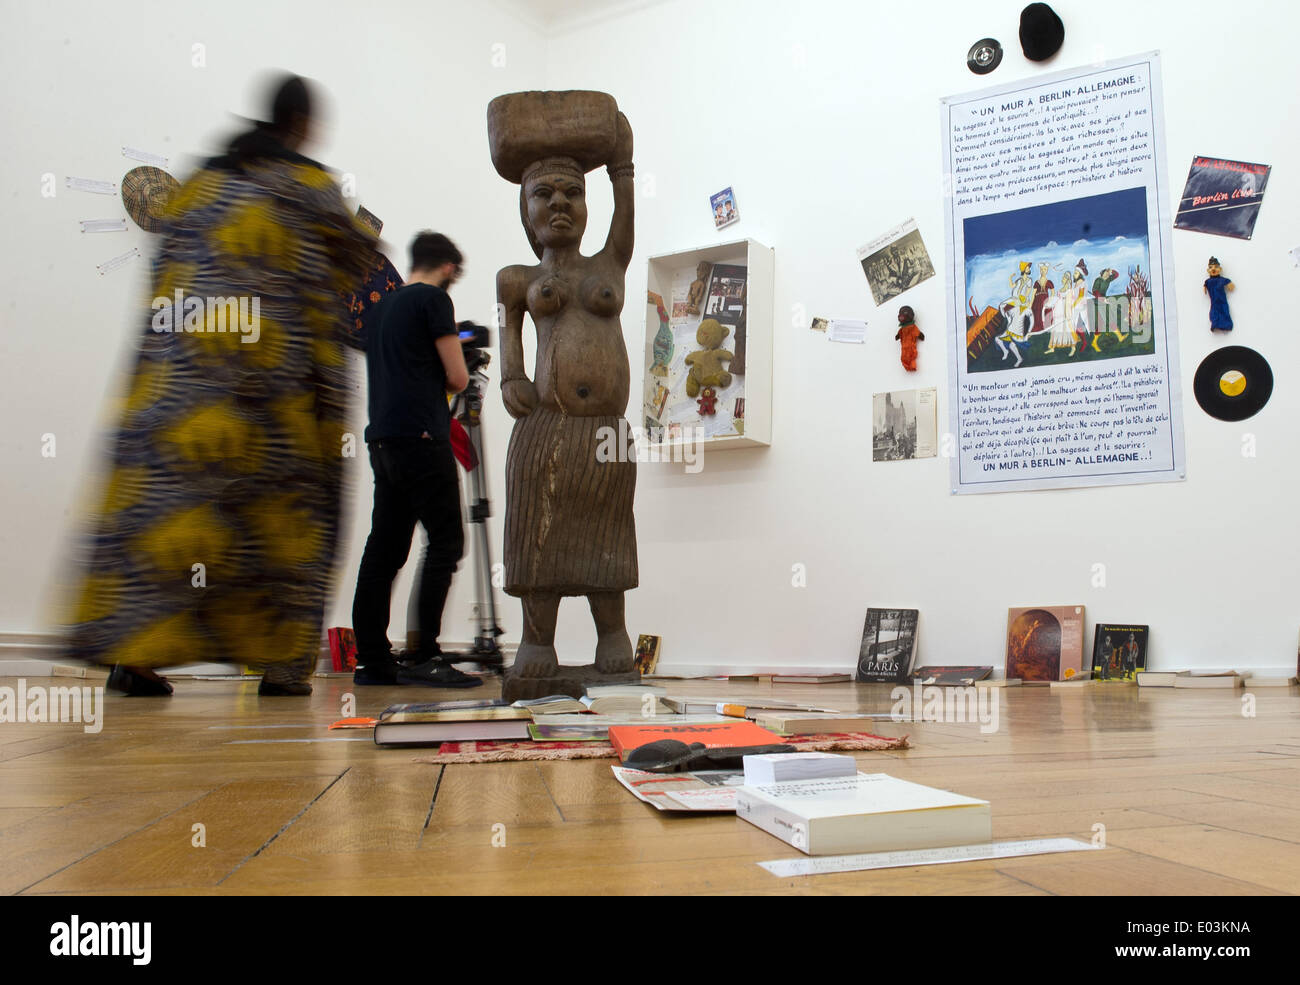 Berlin, Germany. 30th Apr, 2014. Two visitors the exhibition 'Les artistes et l'ecriture' by Benin installation artists Georges Adeagbo at Gallery Wien Lukatsch in Berlin, Germany, 30 April 2014. Many of Berlin's galleries participate in the event 'Gallery Weekend from 02 to 04 May. Photo: DANIEL NAUPOLD/dpa/Alamy Live News - Stock Image